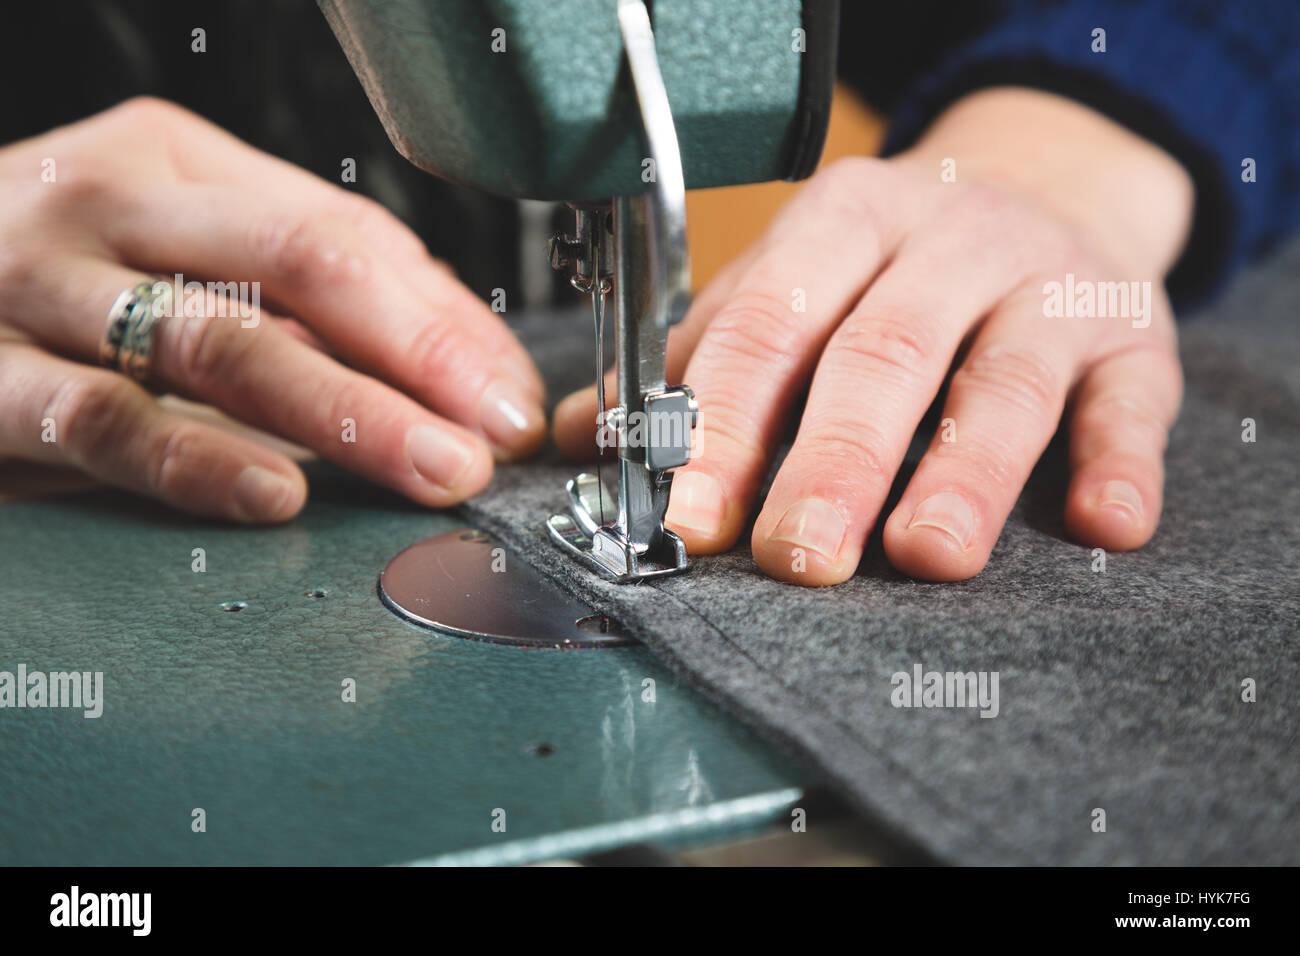 Hands of seamstress sewing with a professional machine a grey fabric - Stock Image